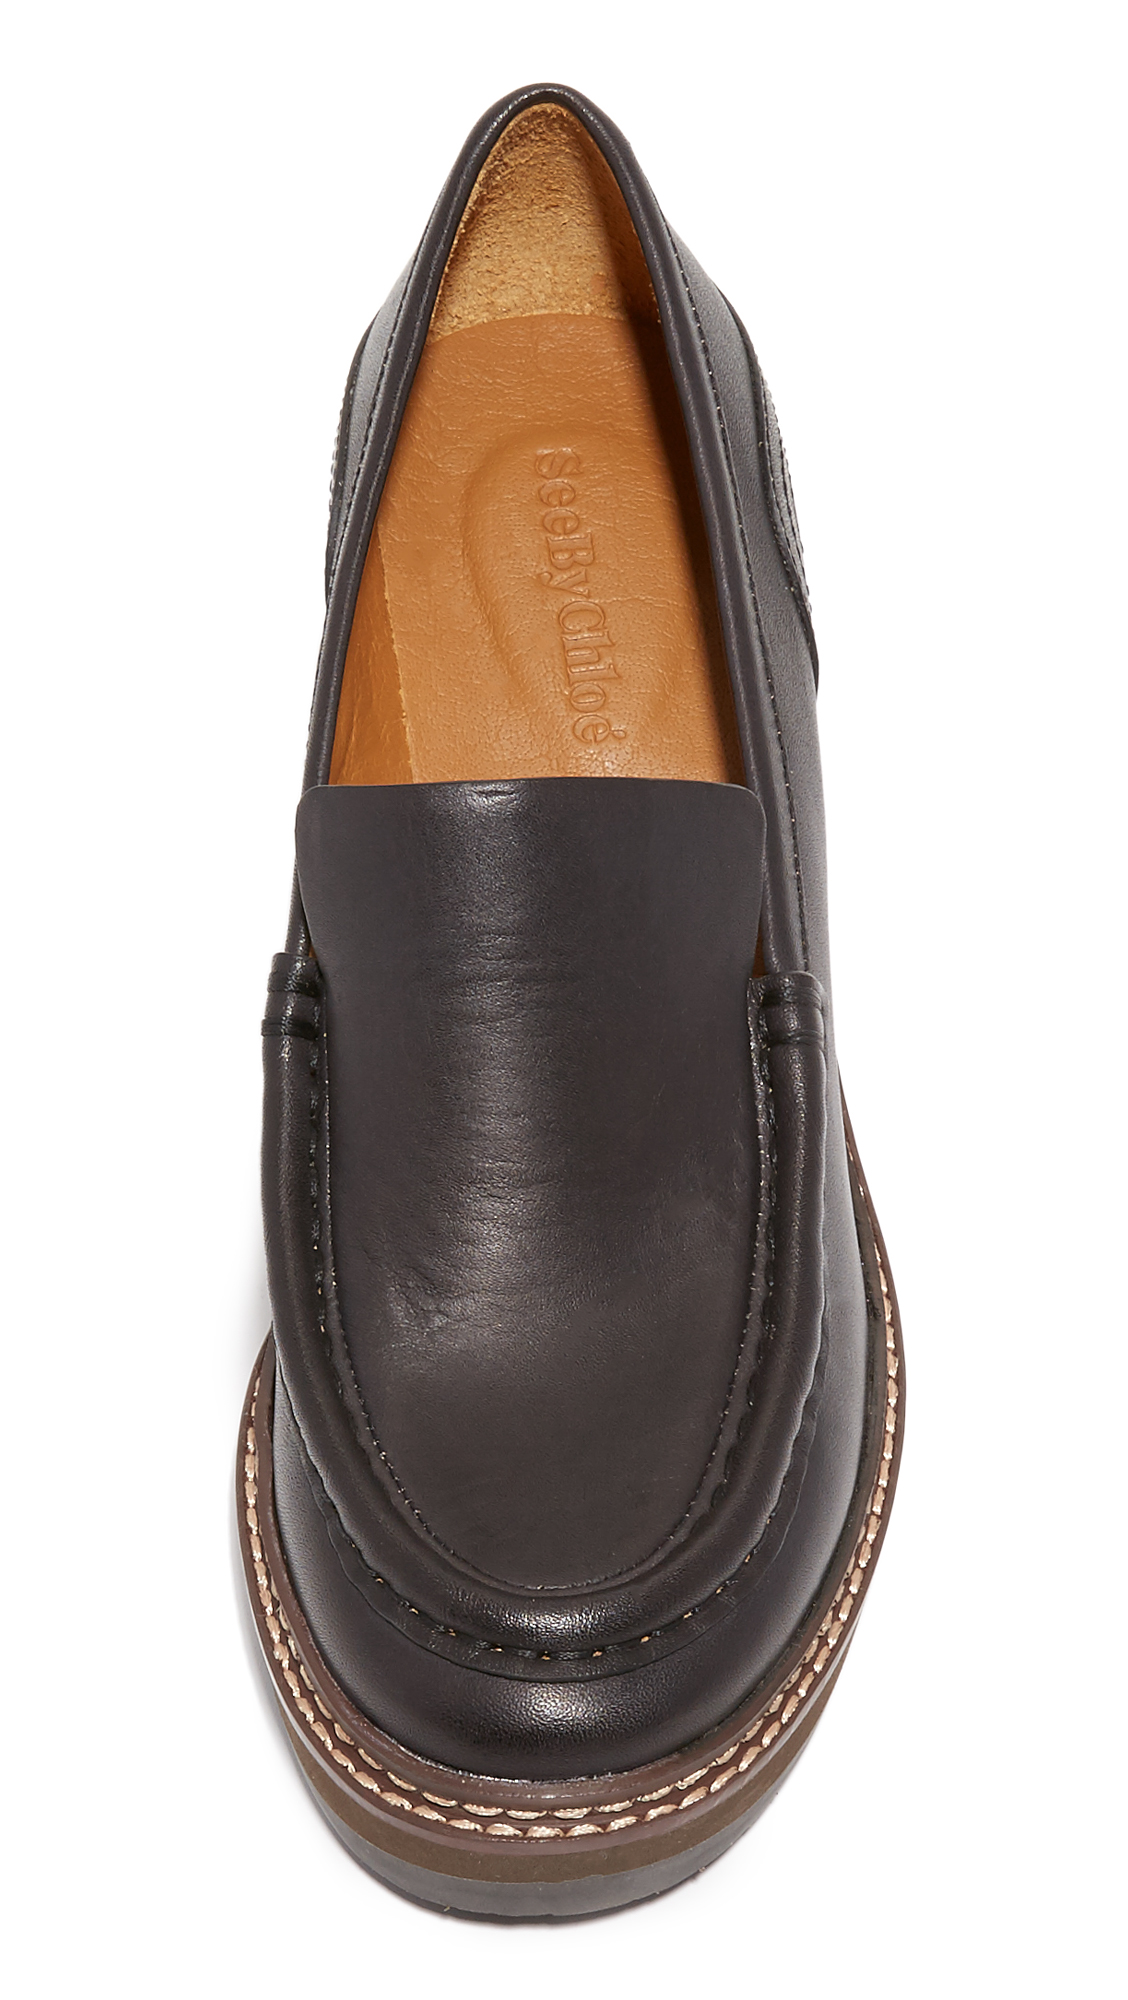 Fashionable Cheap Online FOOTWEAR - Loafers See By Chloé Get Online Genuine Cheap Online Red Pre Order Eastbay How Much Cheap Price wFI7t2U9